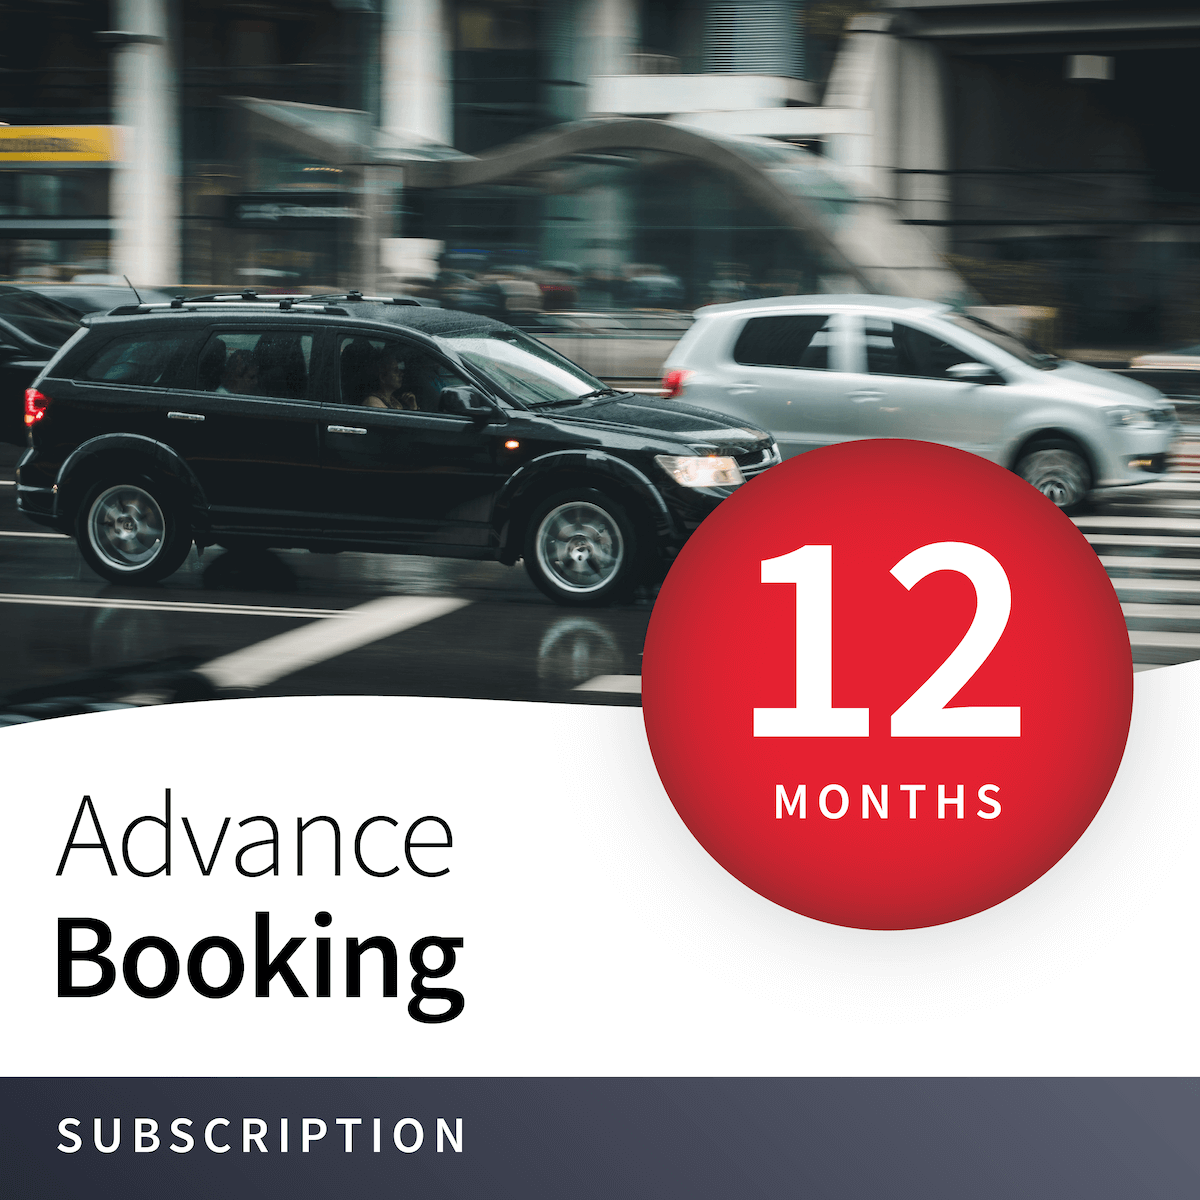 Priority Advance Booking - 12 Months 1